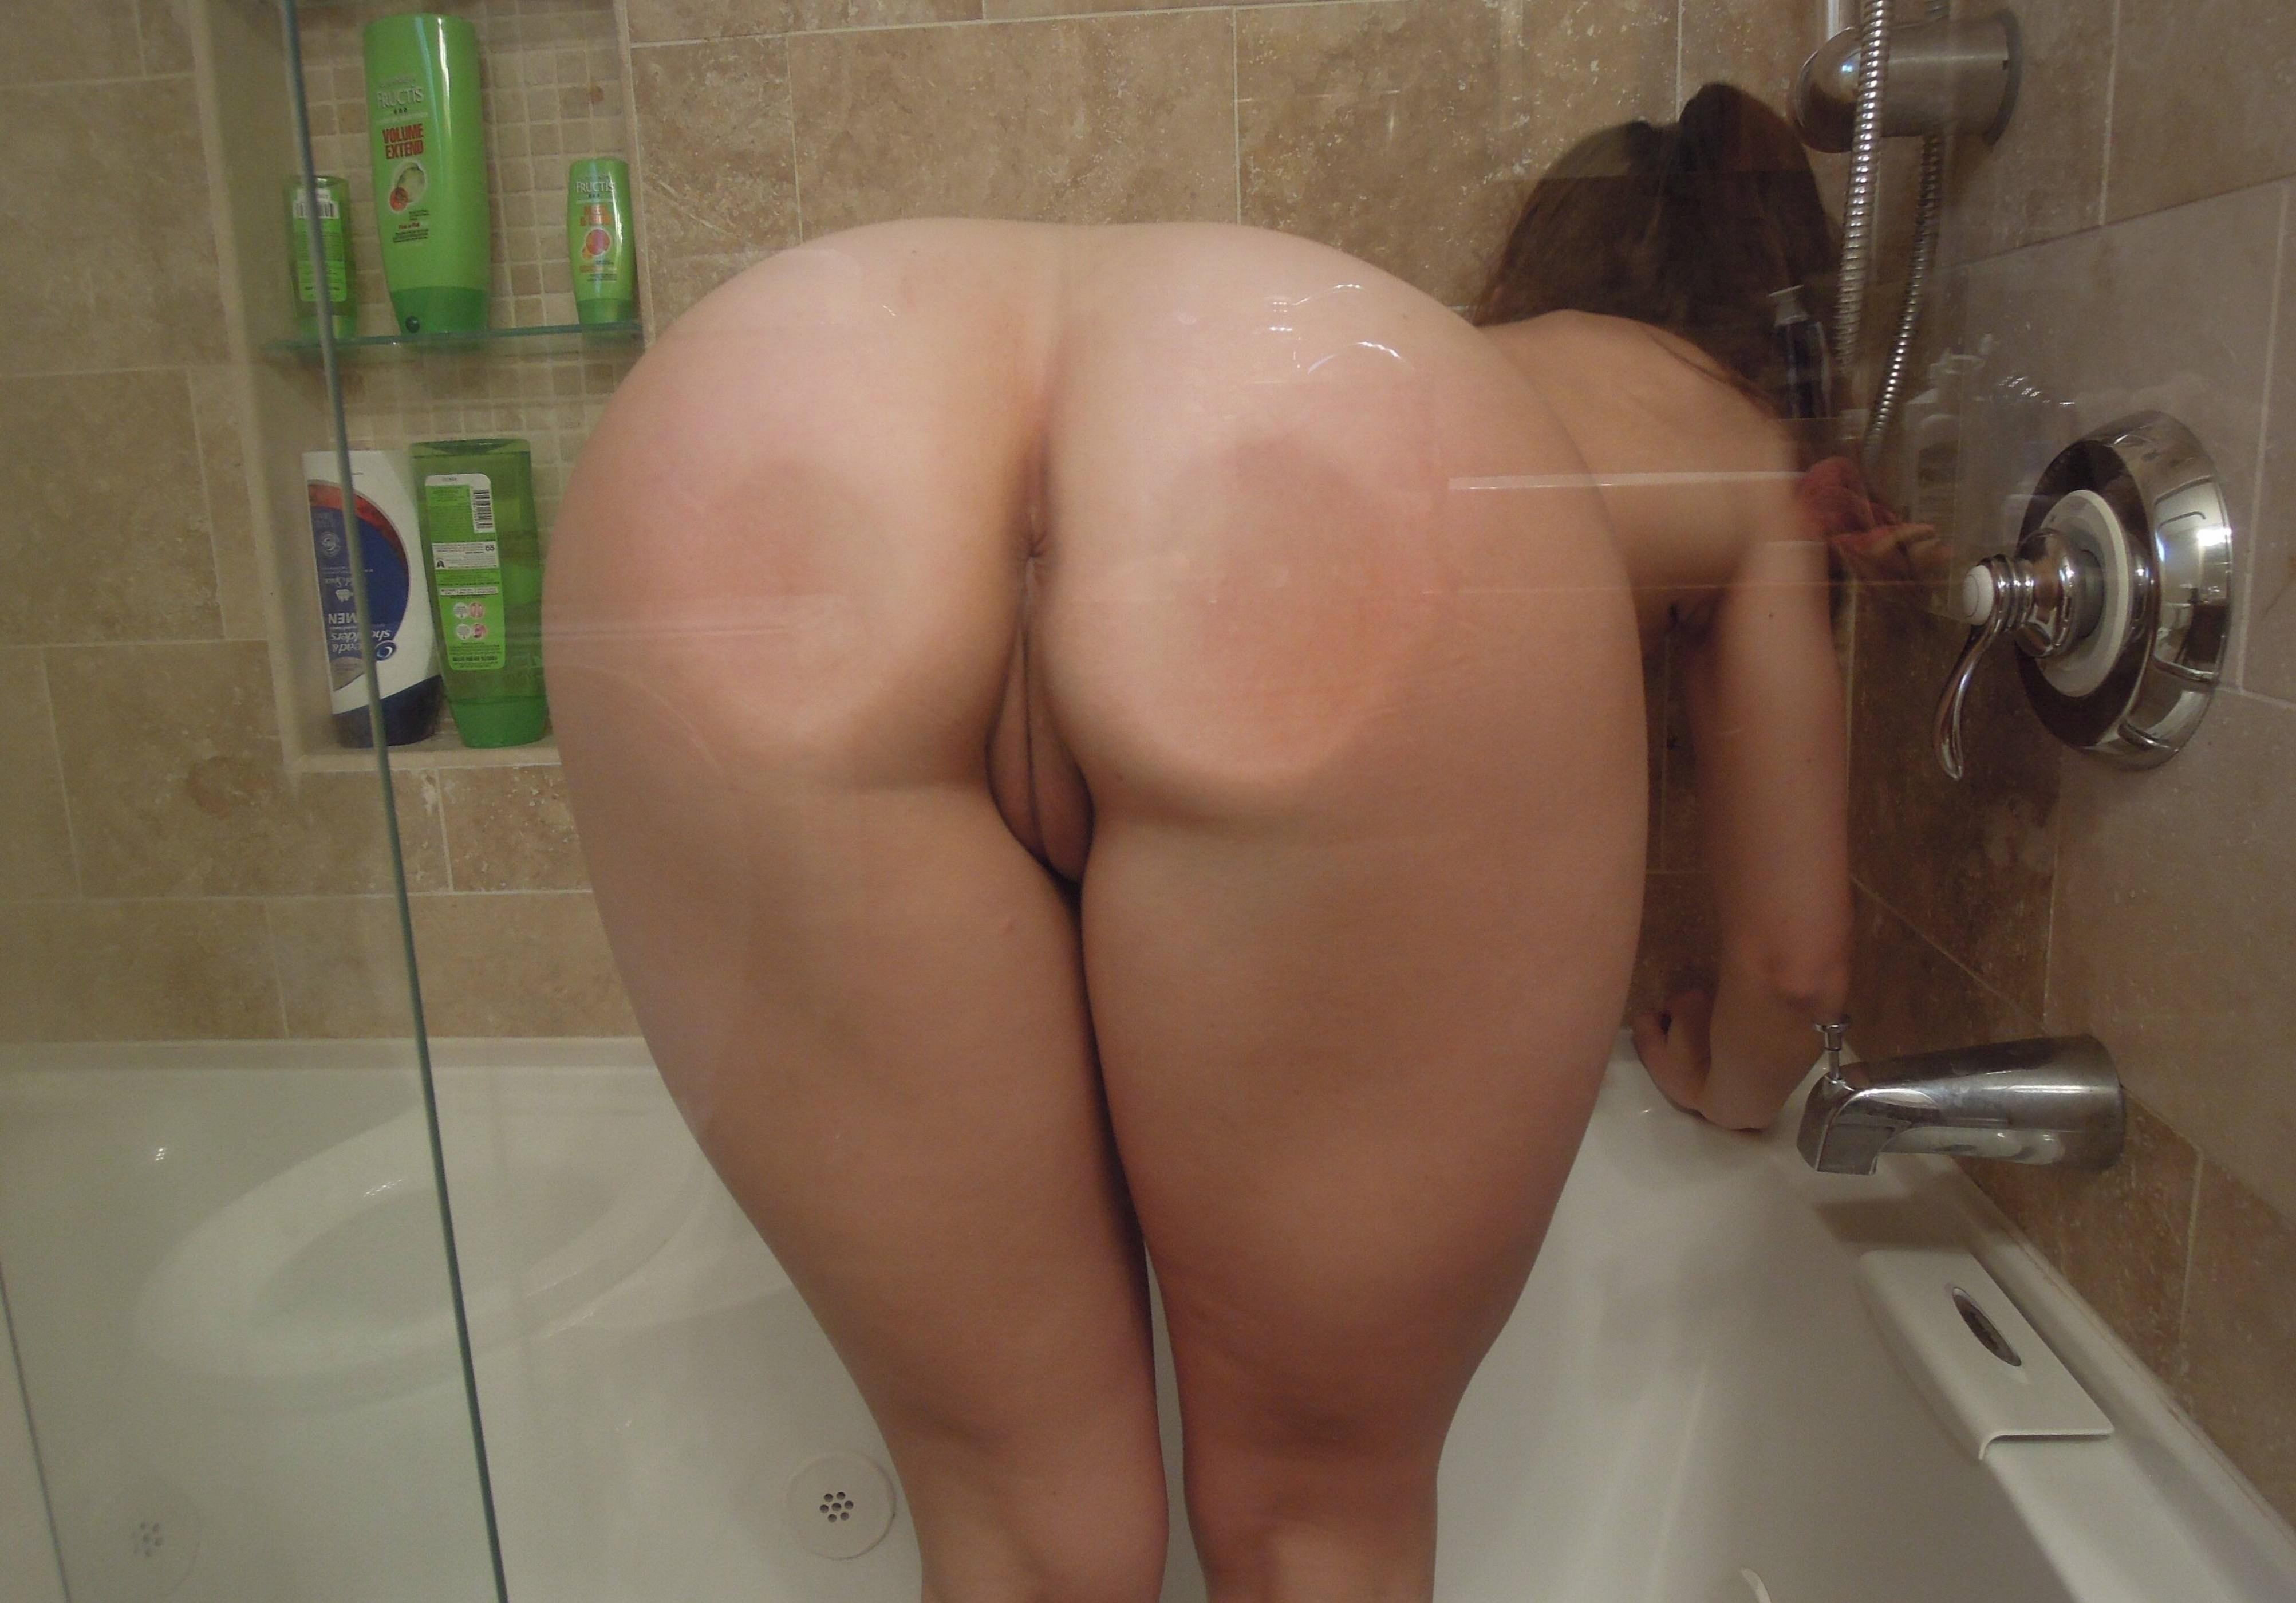 Naked big booty girls in the shower